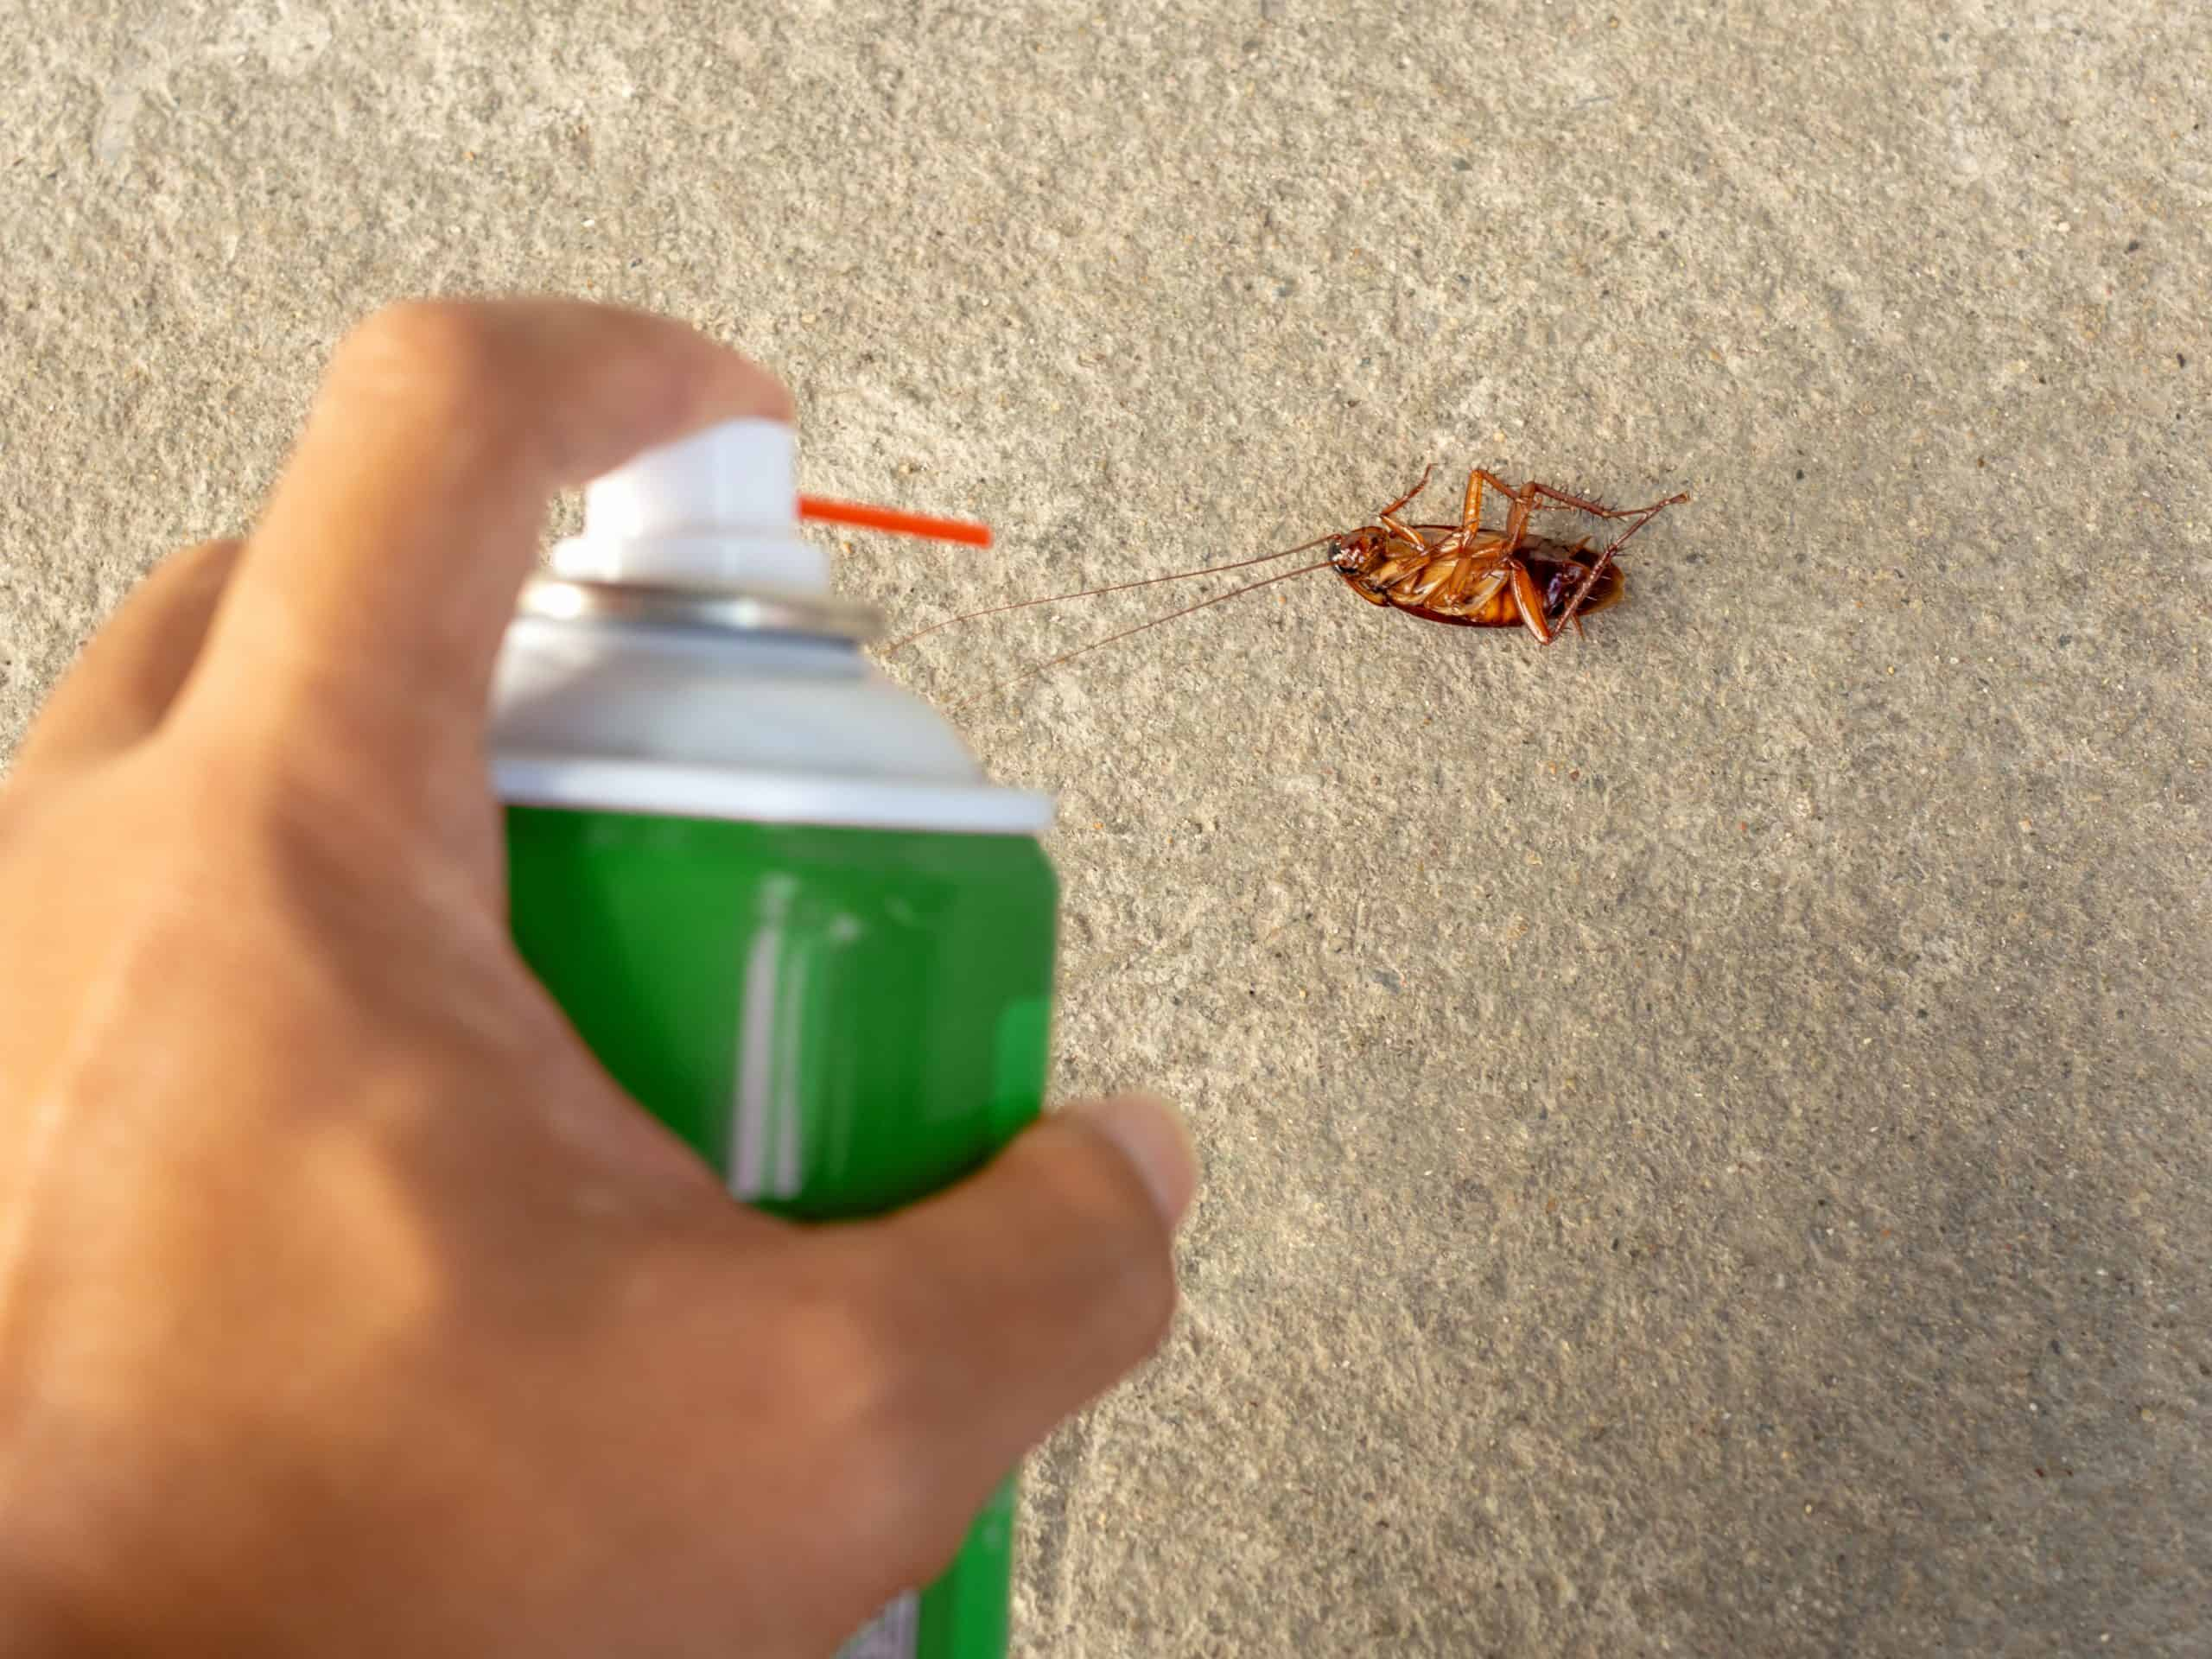 Killing roaches in your apartment